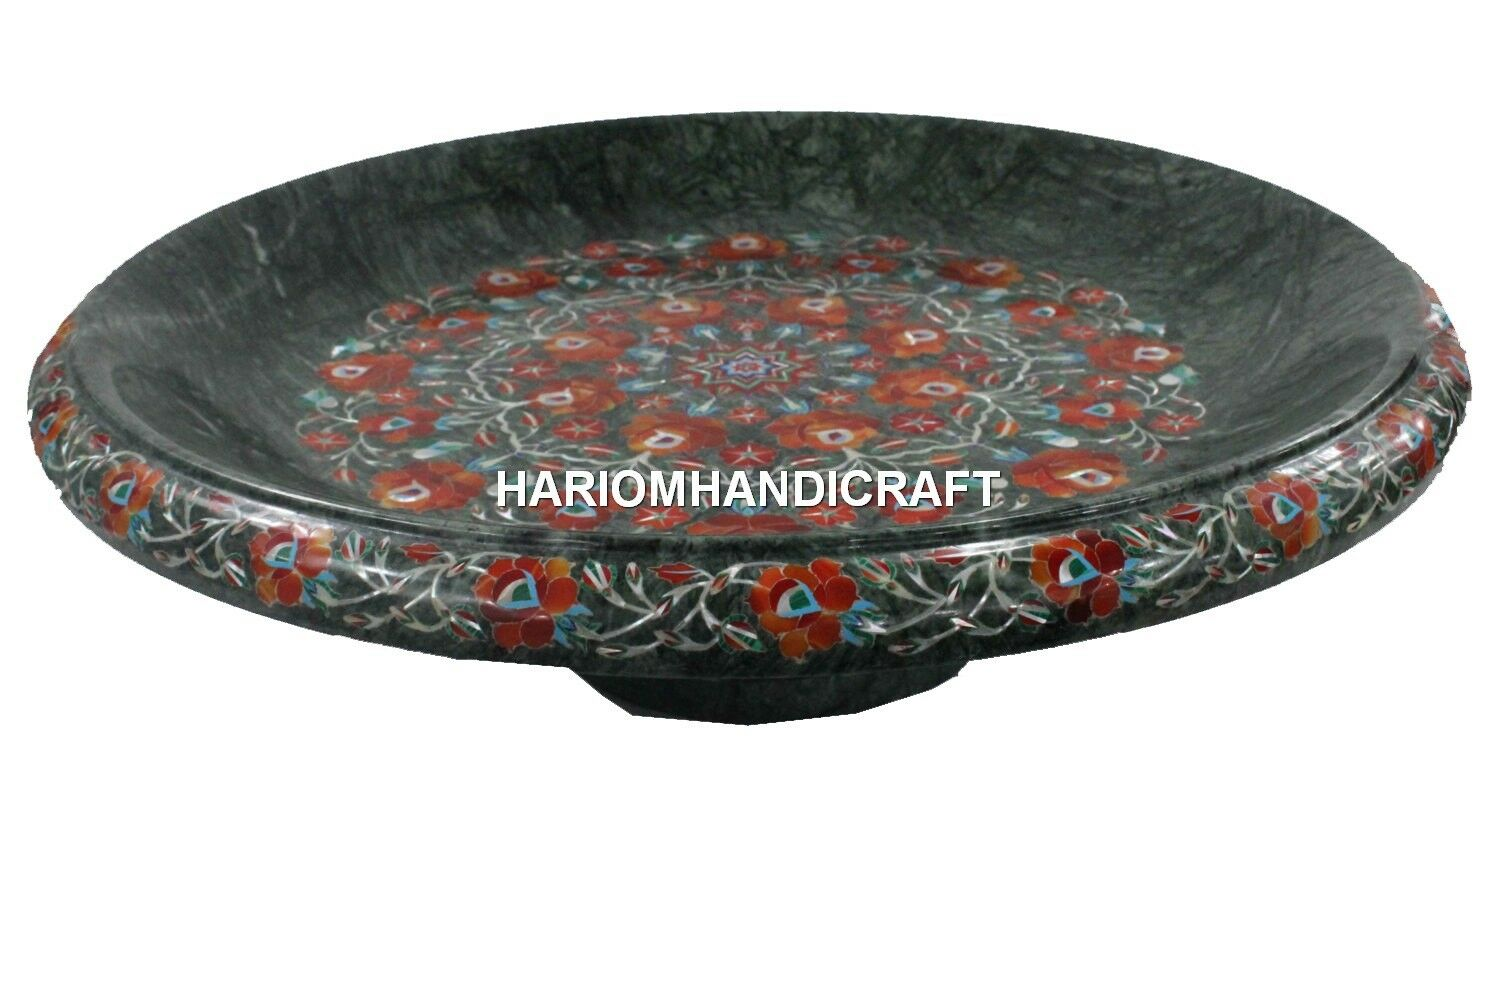 vert Marble Kitchen Dry Fruit Bowl Hakik Floral Inlaid Handwork Work Gift Arts